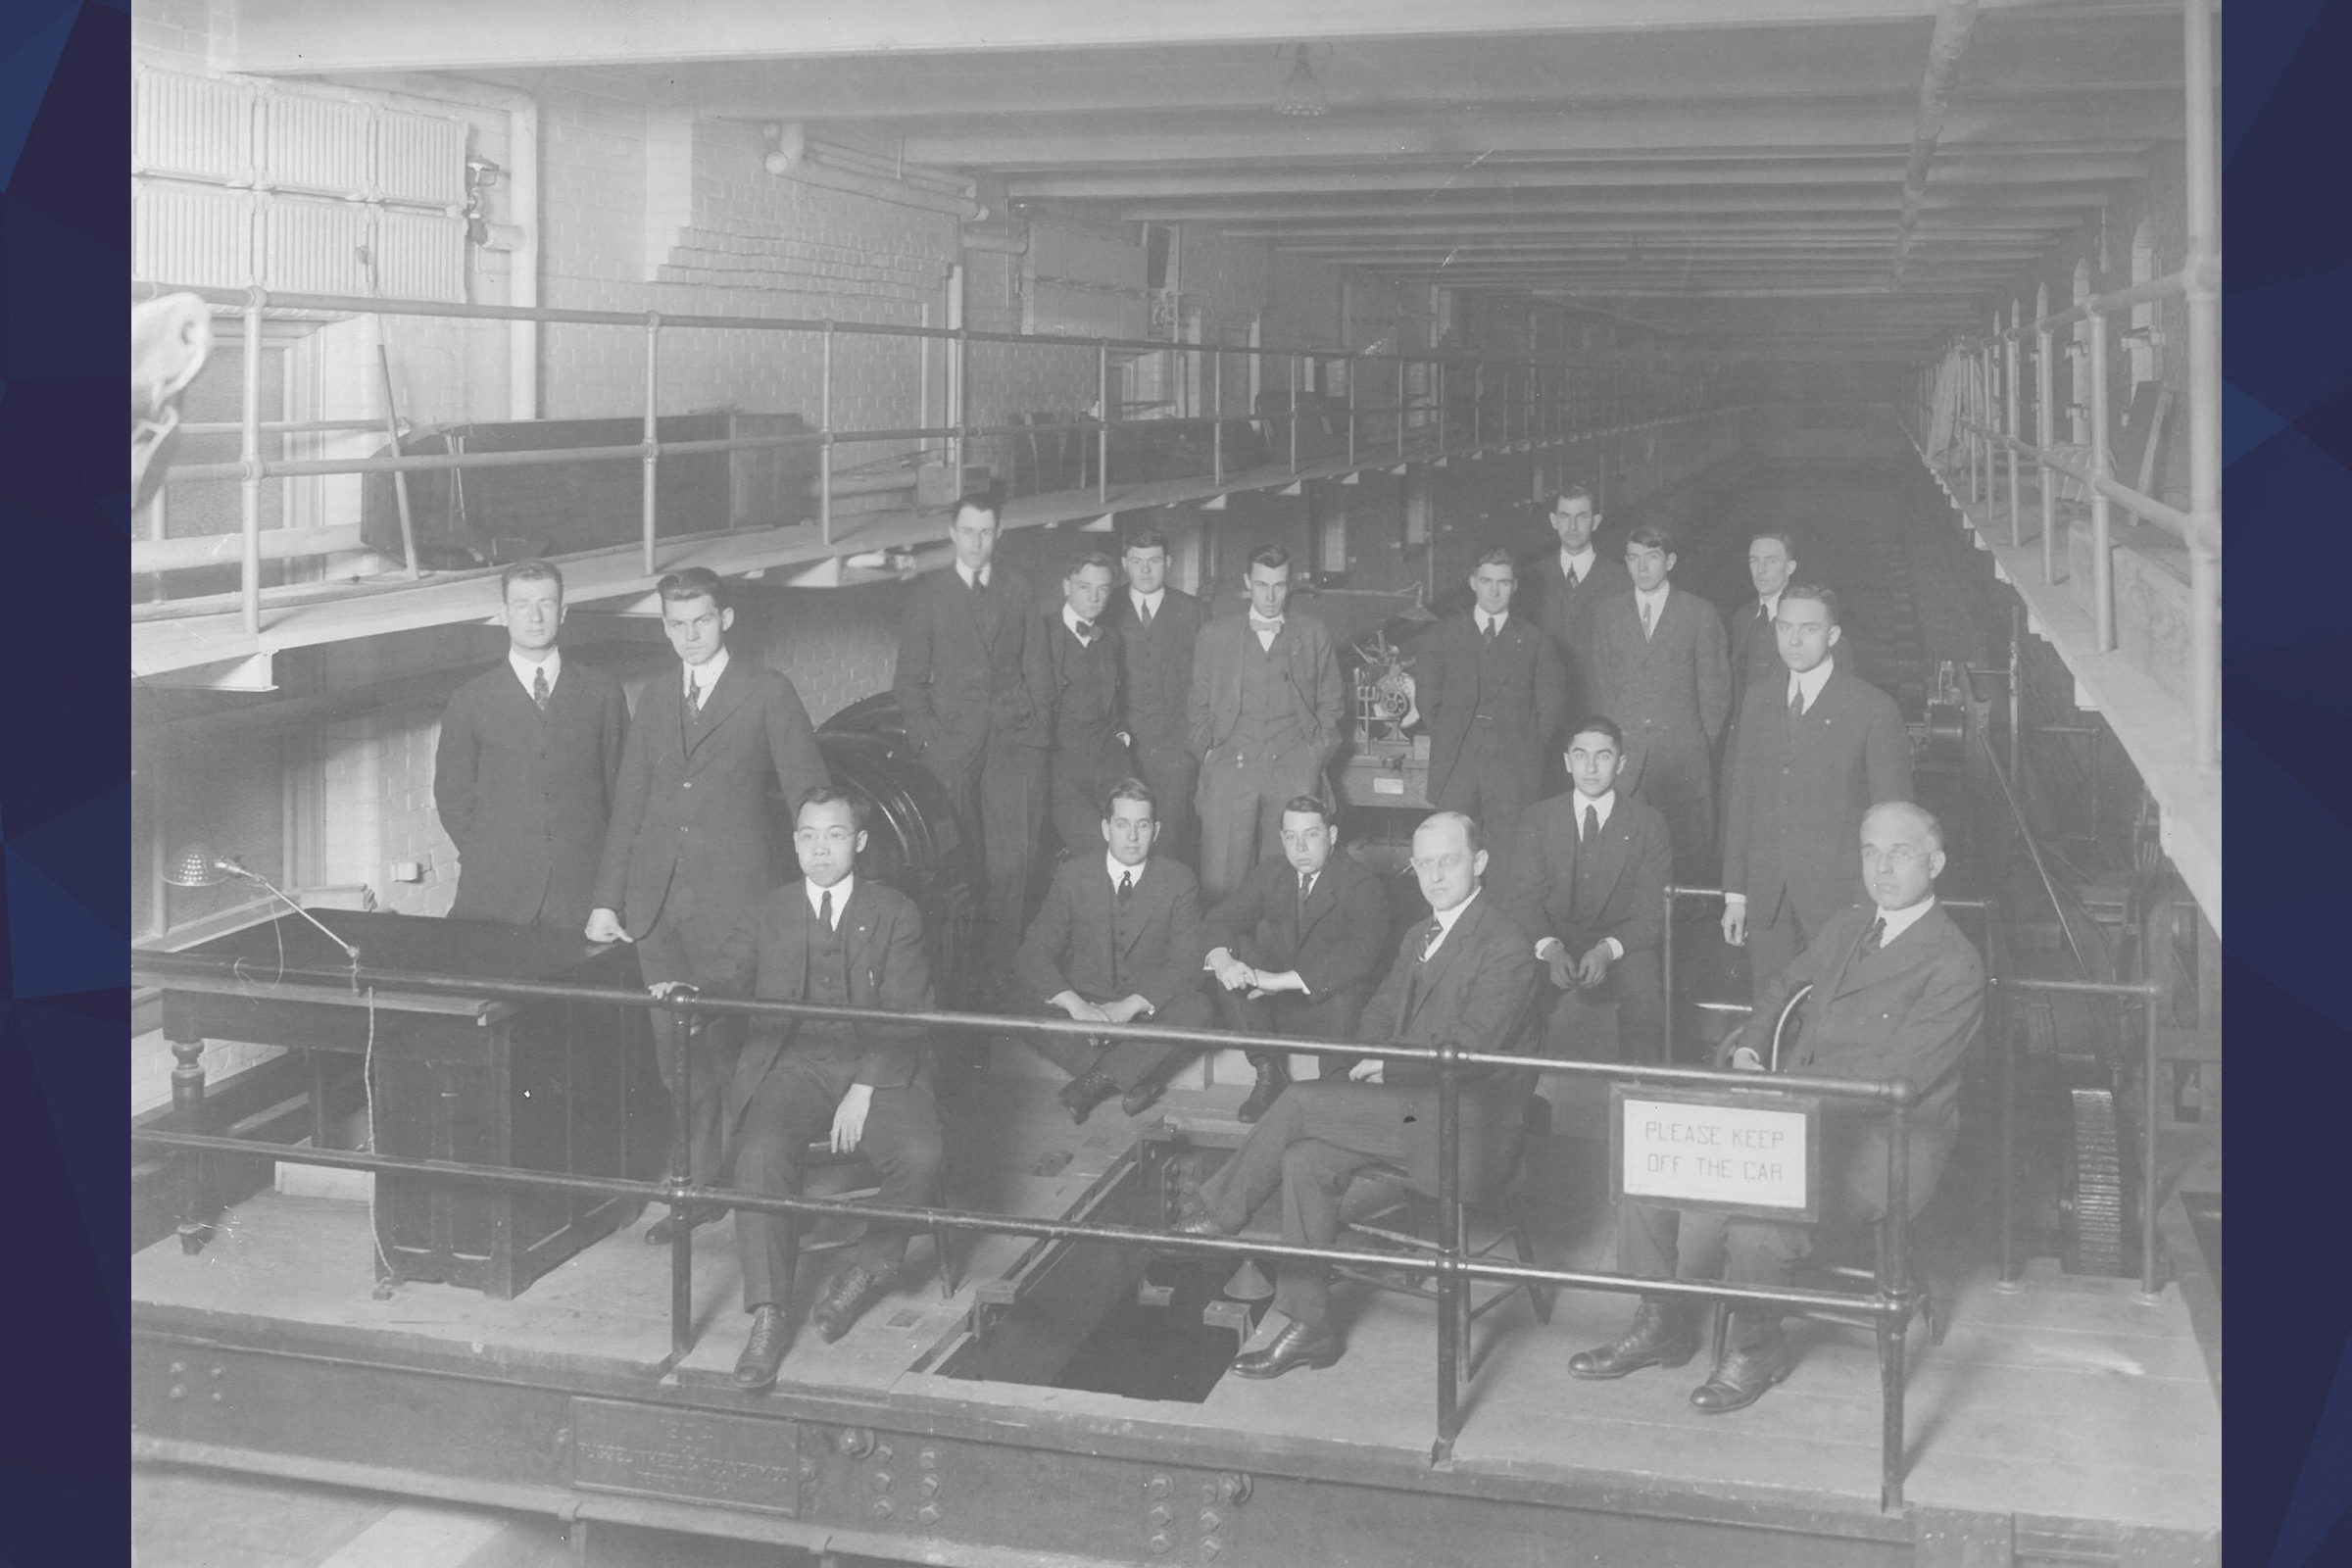 Picture of the original members of the QuarterDeck Society